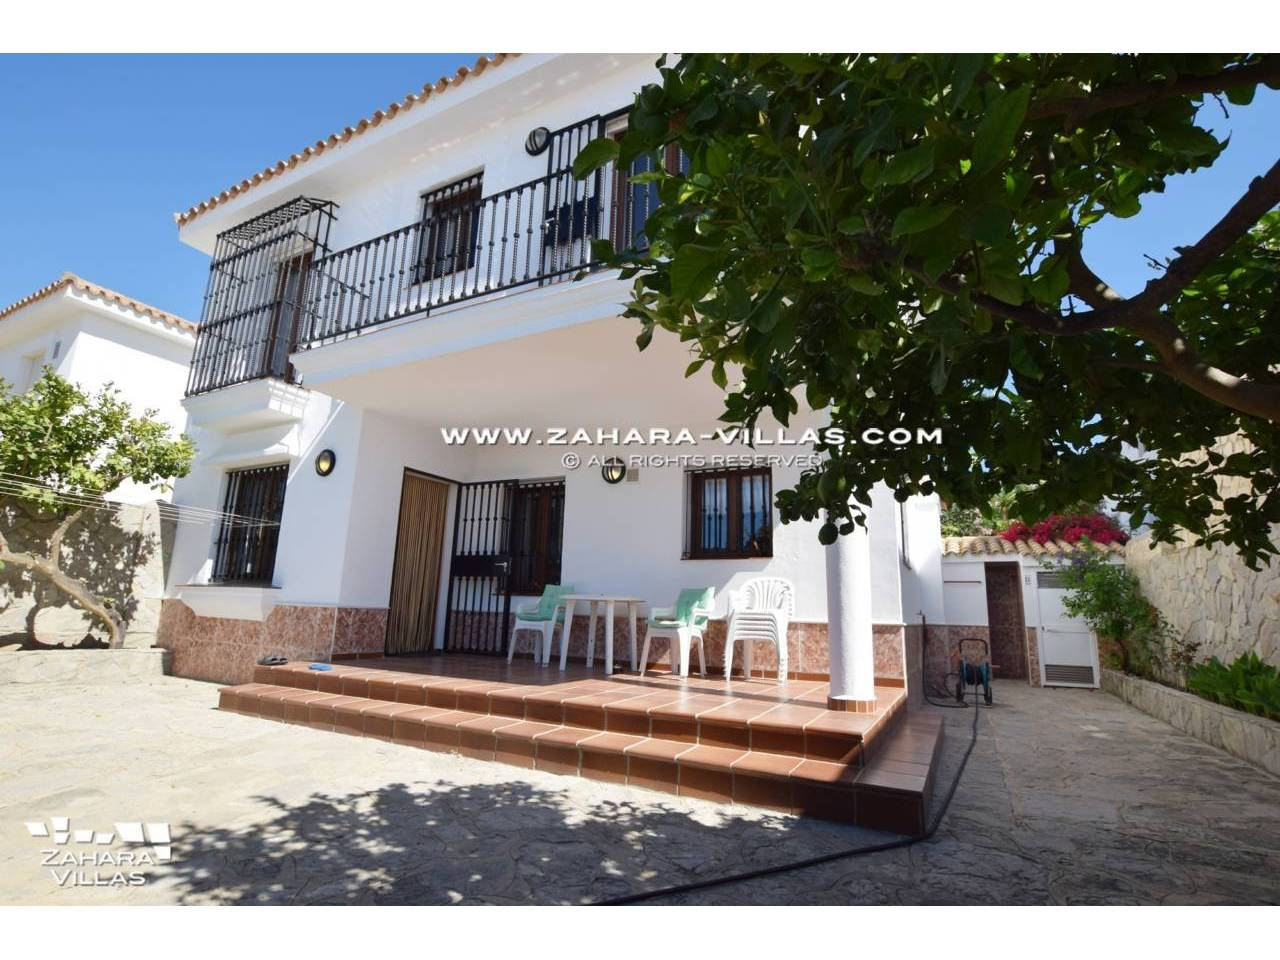 Imagen 19 de House for sale on the front beach, with sea views in Zahara de los Atunes